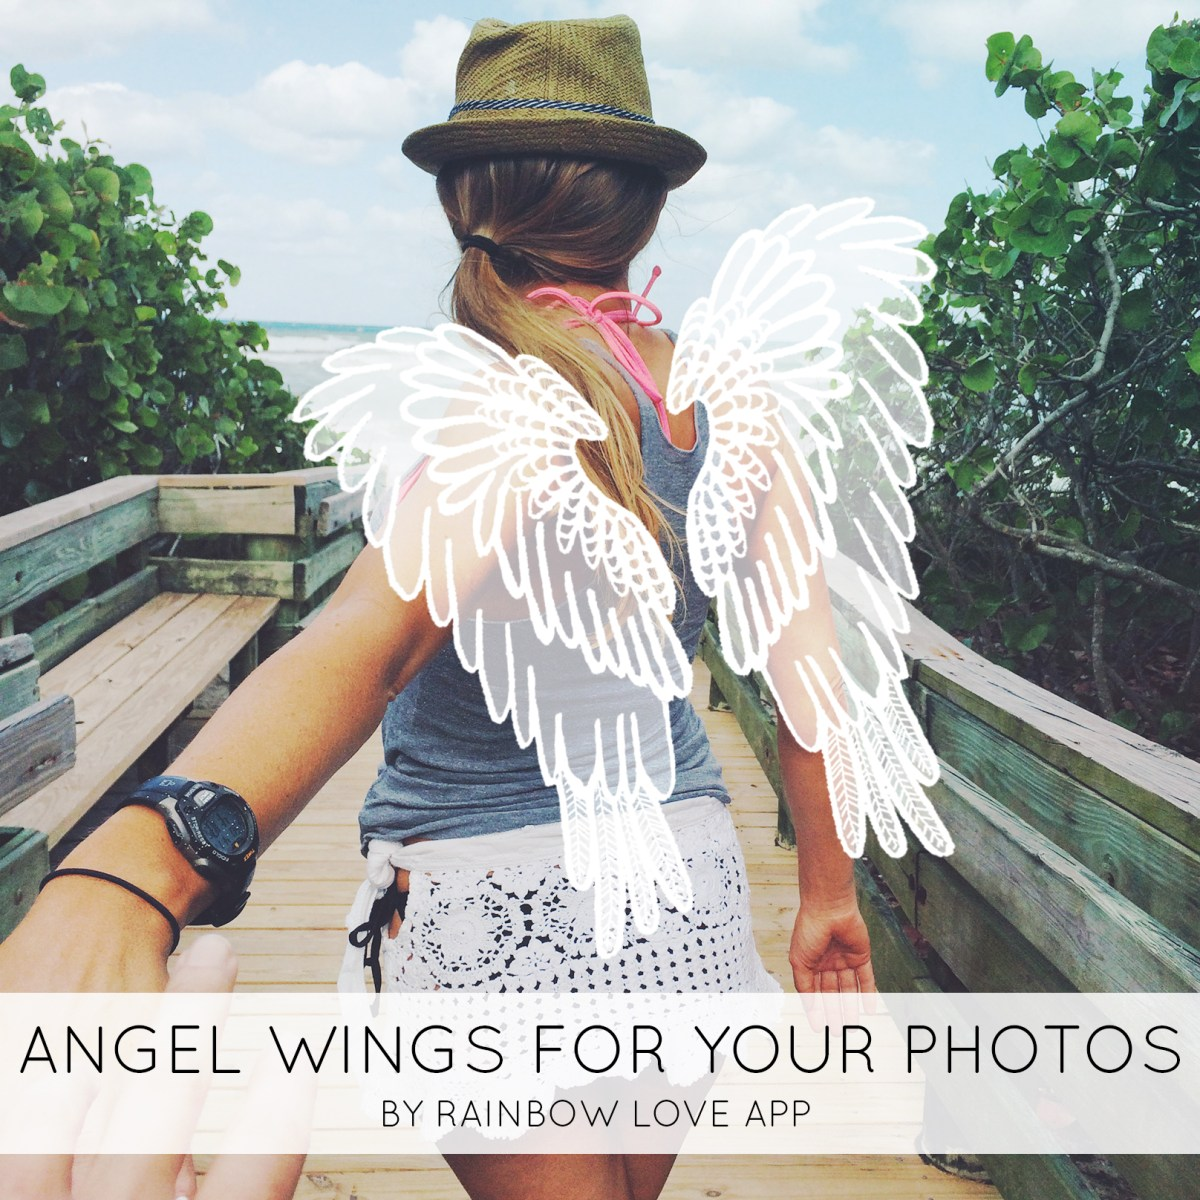 angel-wings-for-your-photos-angel-effect-photo-editor-rainbow-love-app-angels-wing-photo-editing-art-and-filters-best-rainbow-love-app-16